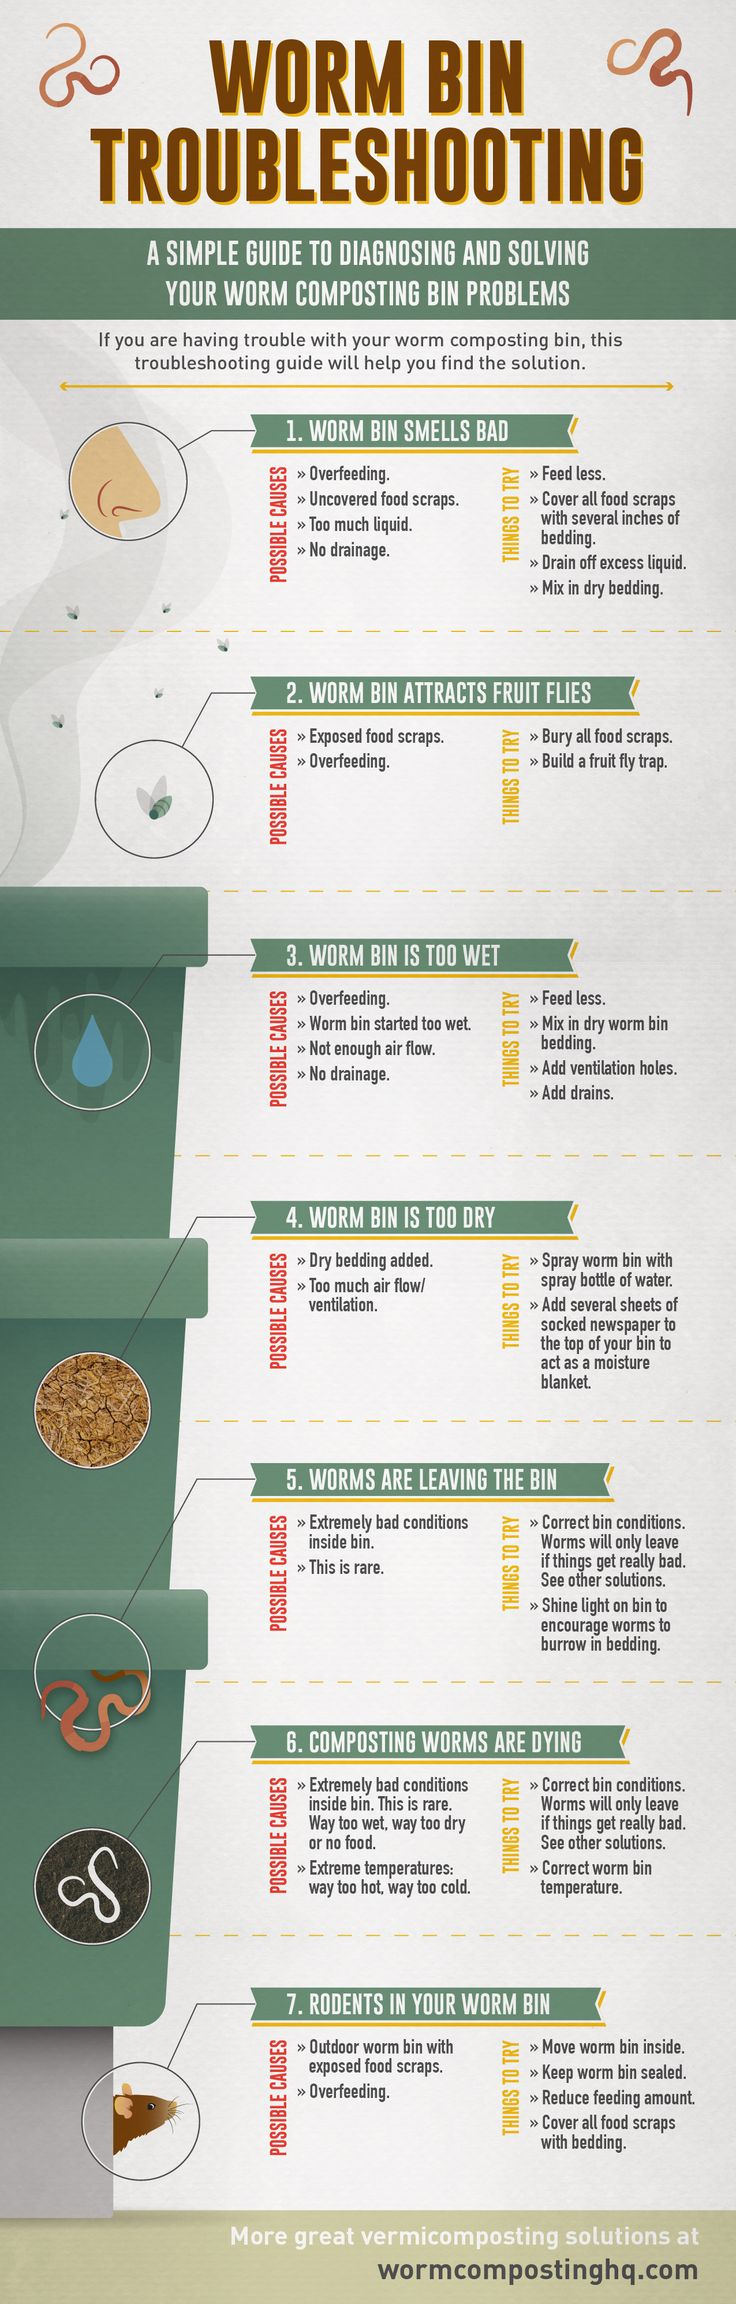 Visual #WormComposting Bin Troubleshooting Guide - a simple guide to diagnosing and solving your #wormbin problems.   http://www.wormcompostinghq.com/caring-for-worms/worm-bin-troubleshooting  #vermicomposting